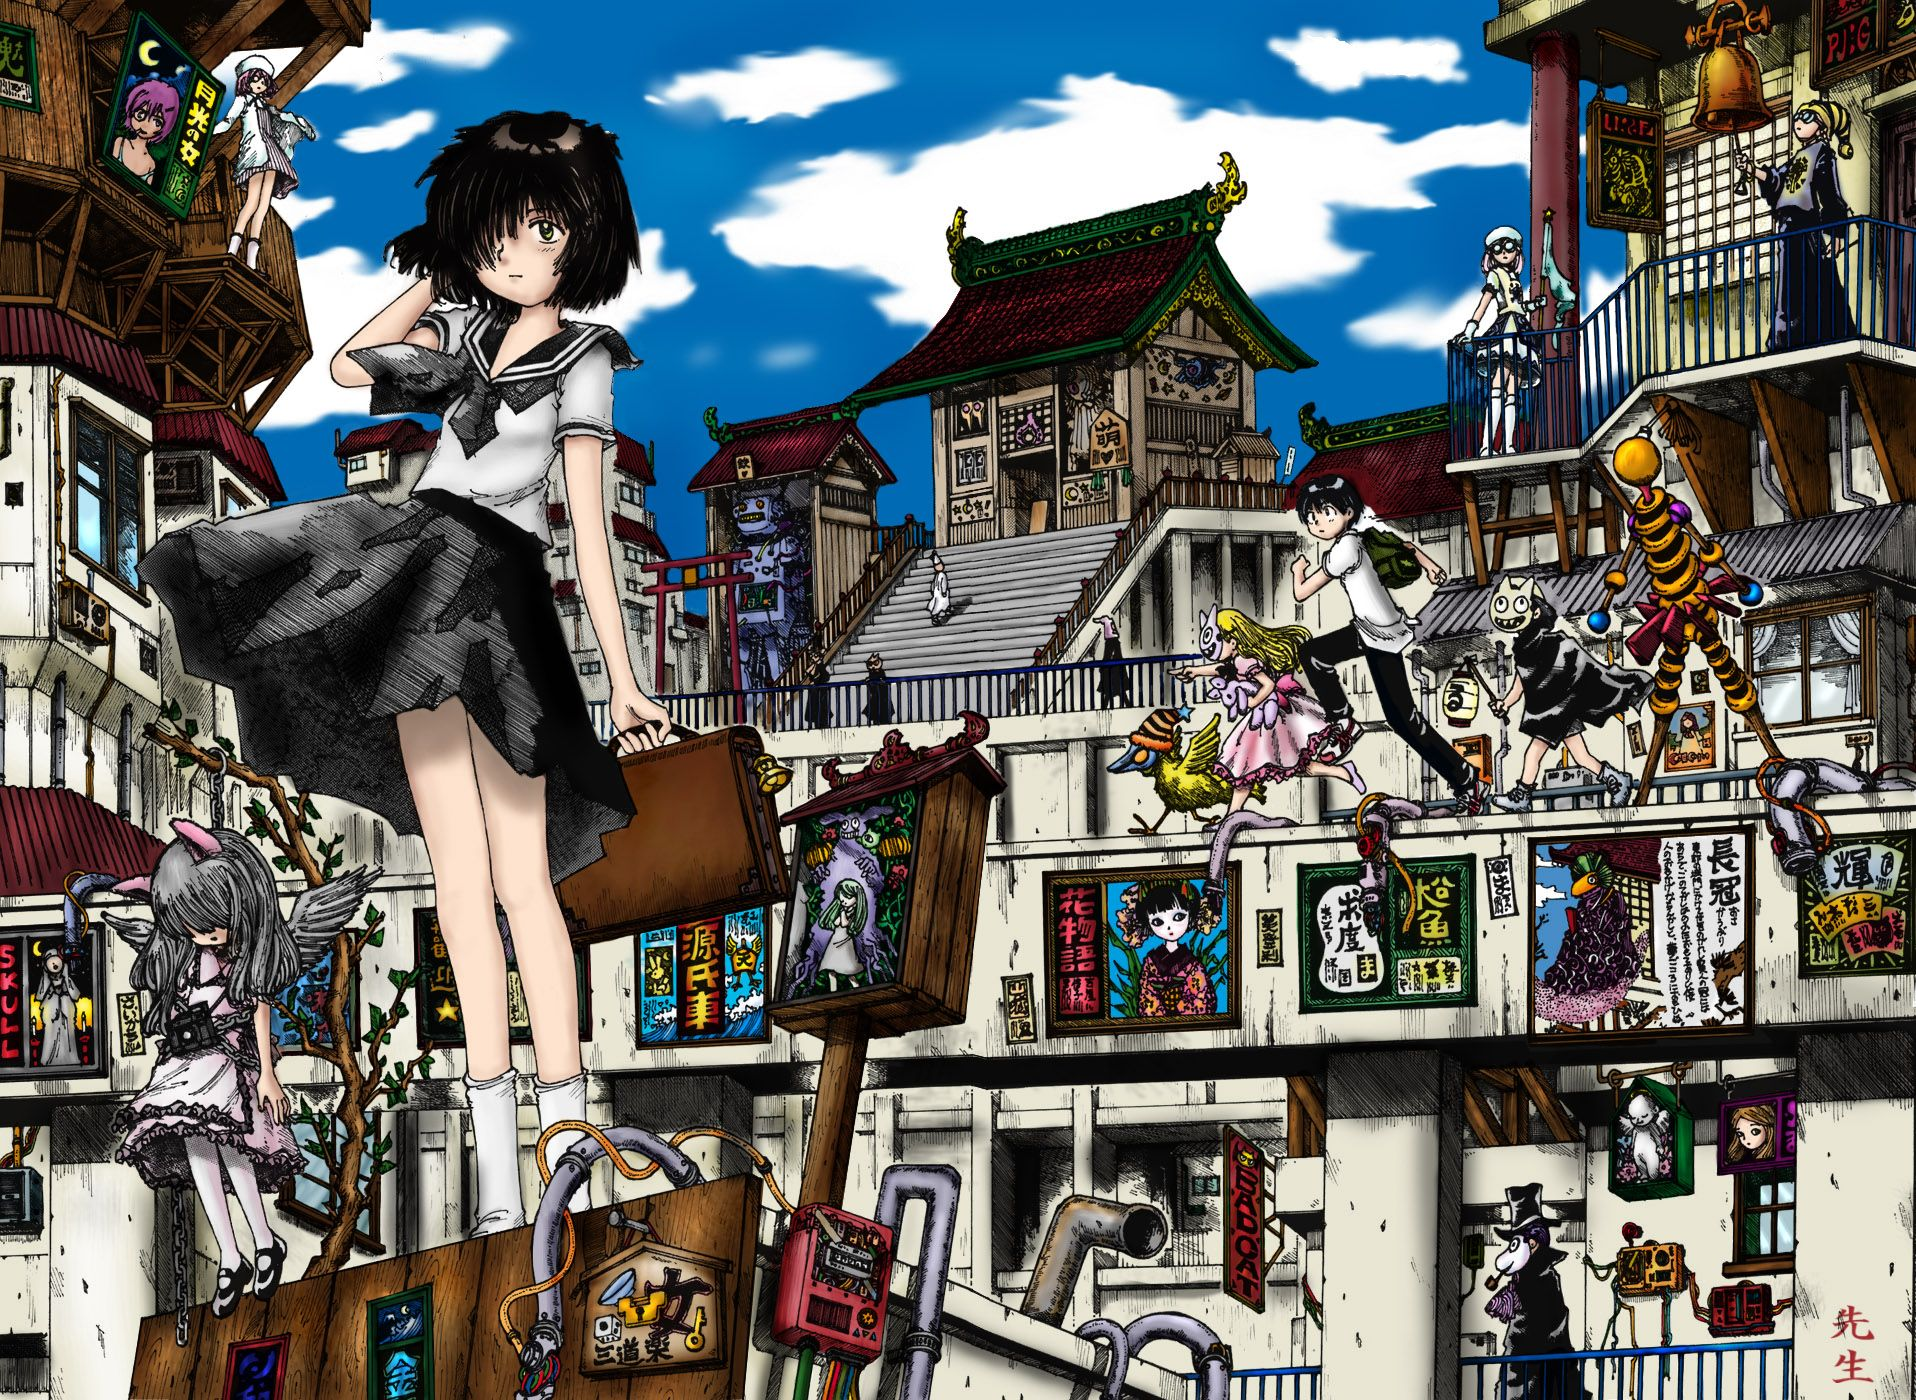 Urabe Mysterious Girlfriend X Anime Worth Watching Mystery Anime Anime Images